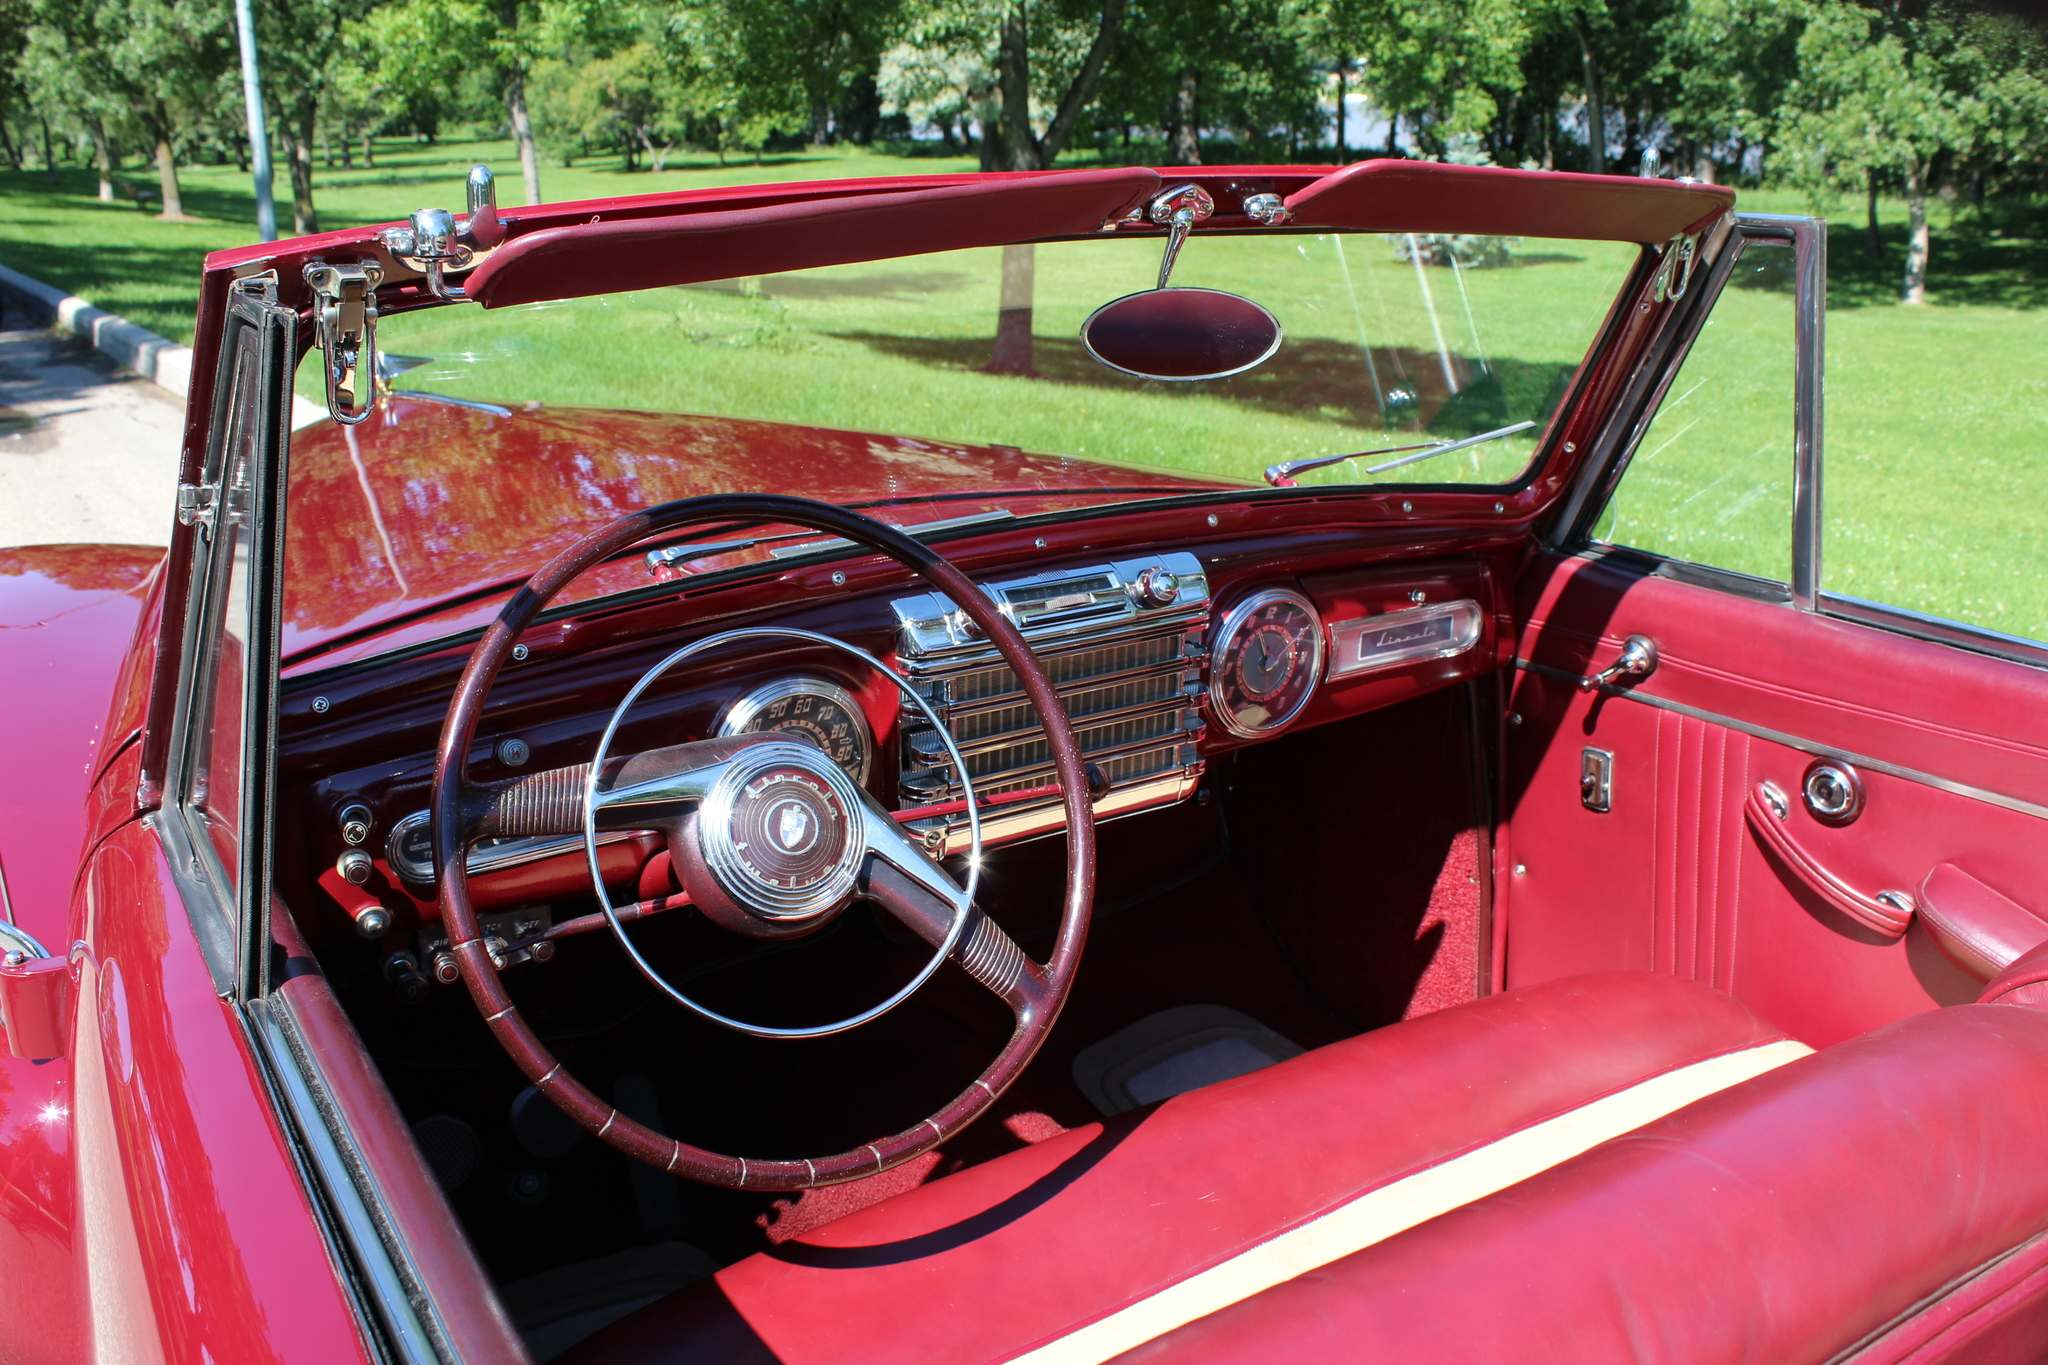 Photos by Larry D'Argis / Winnipeg Free PressThe interior upholstery of the 1946 Continental was redone in Maroon & Beige leather with a new convertible boot cover and seatbelts.